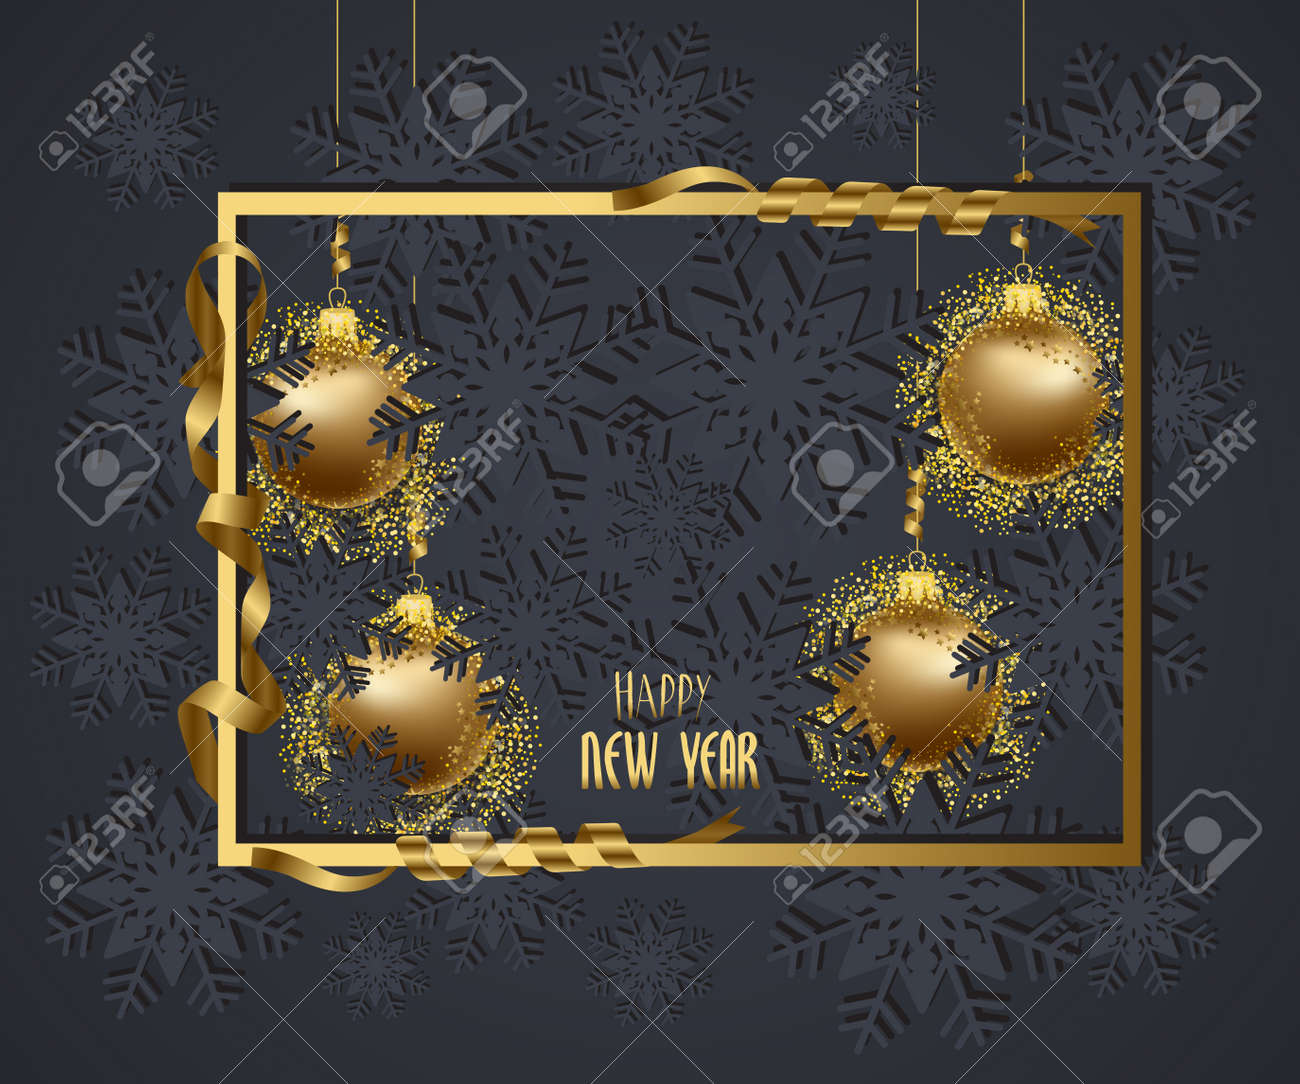 merry christmas and happy new year 2018 wallpaper gold balls stock photo 87050581